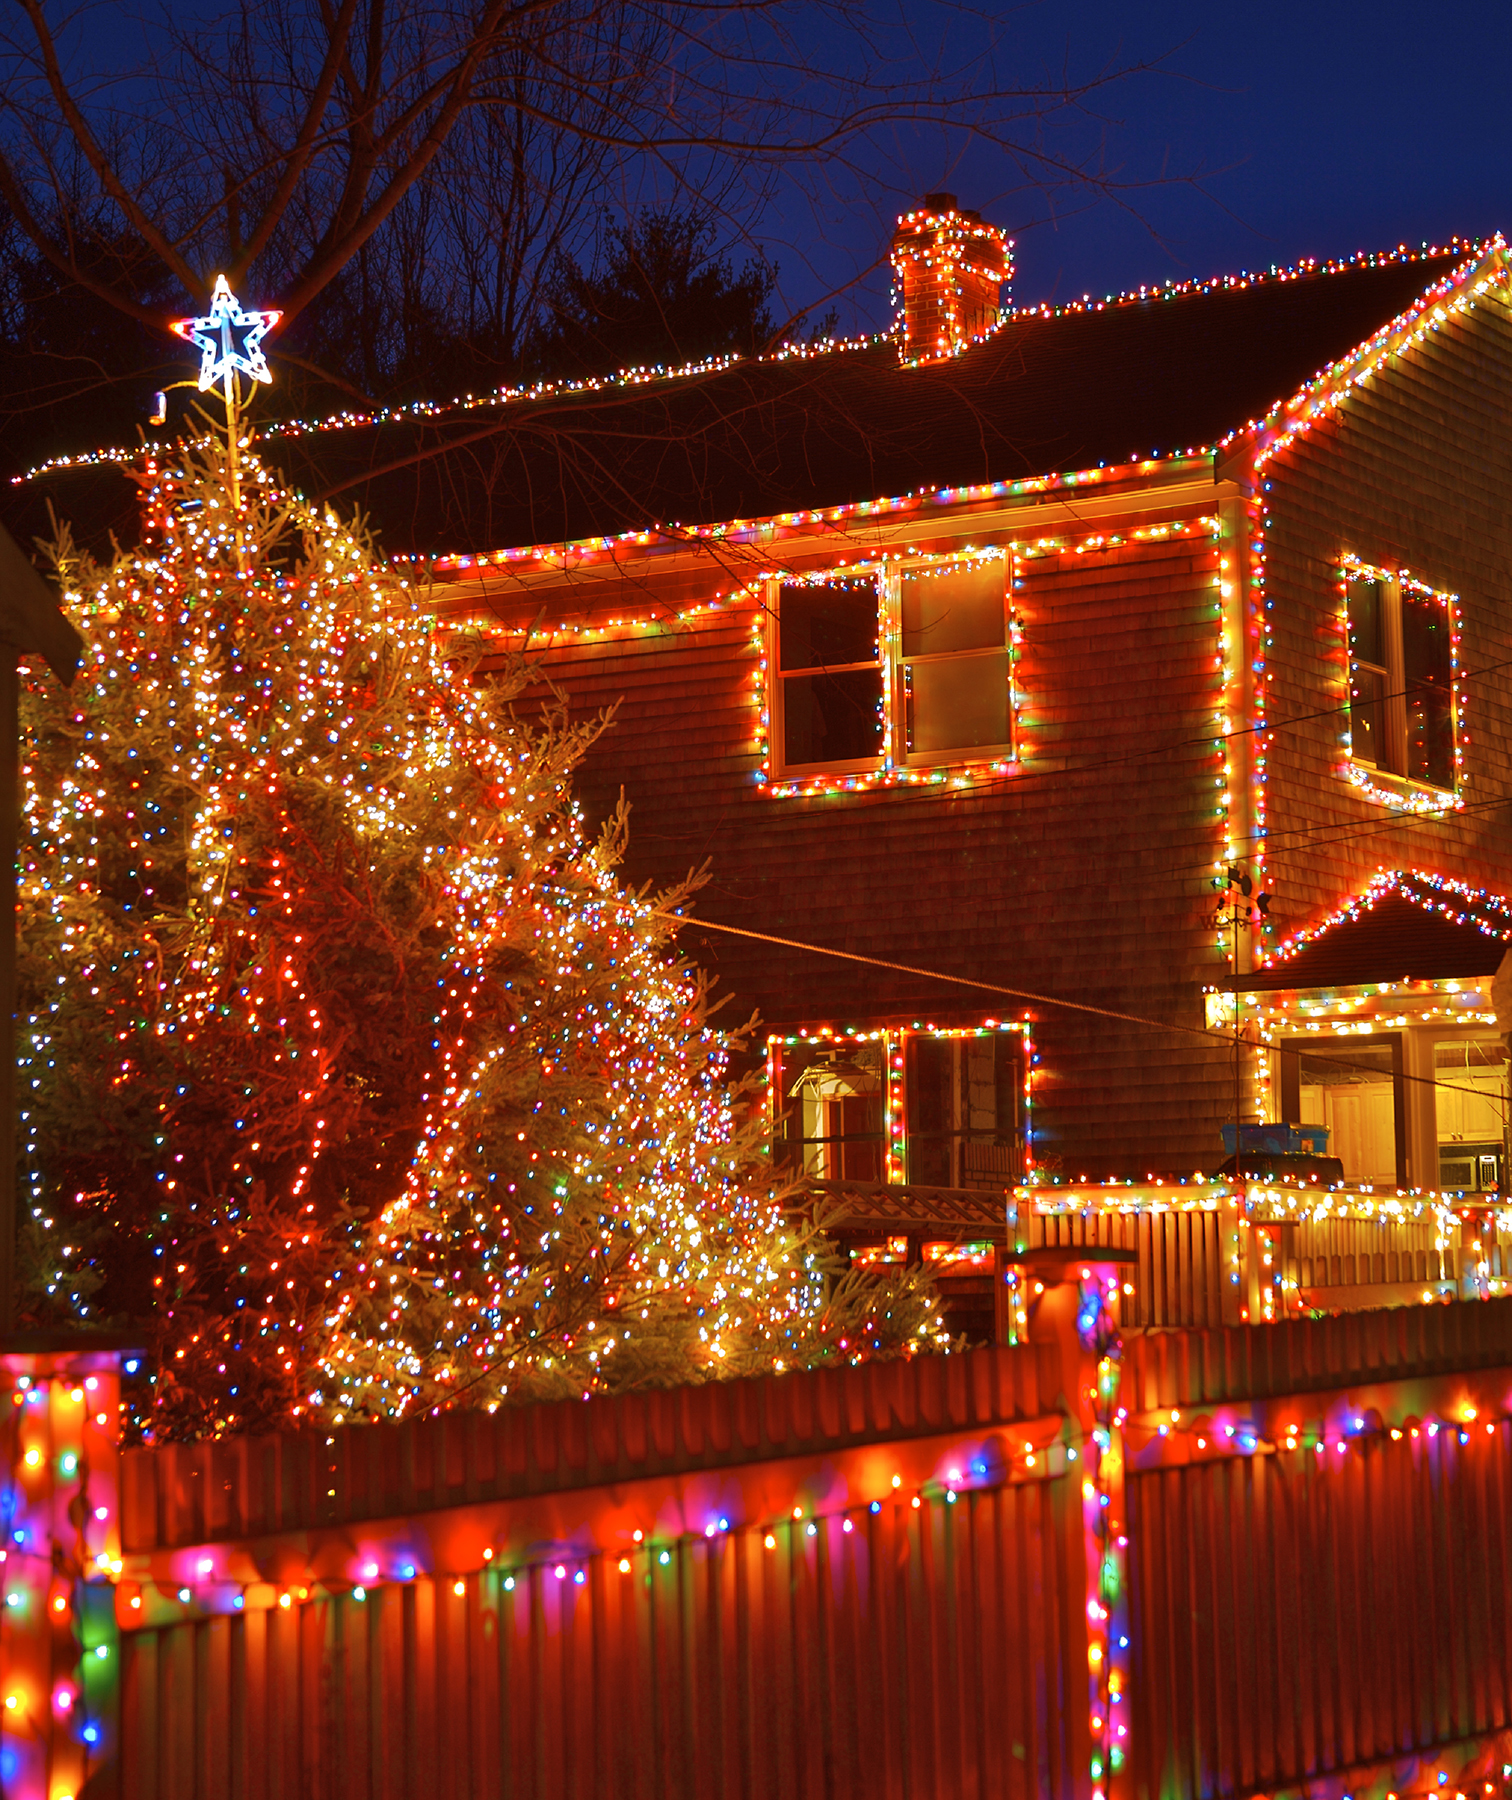 House, fence, trees covered with Christmas lights